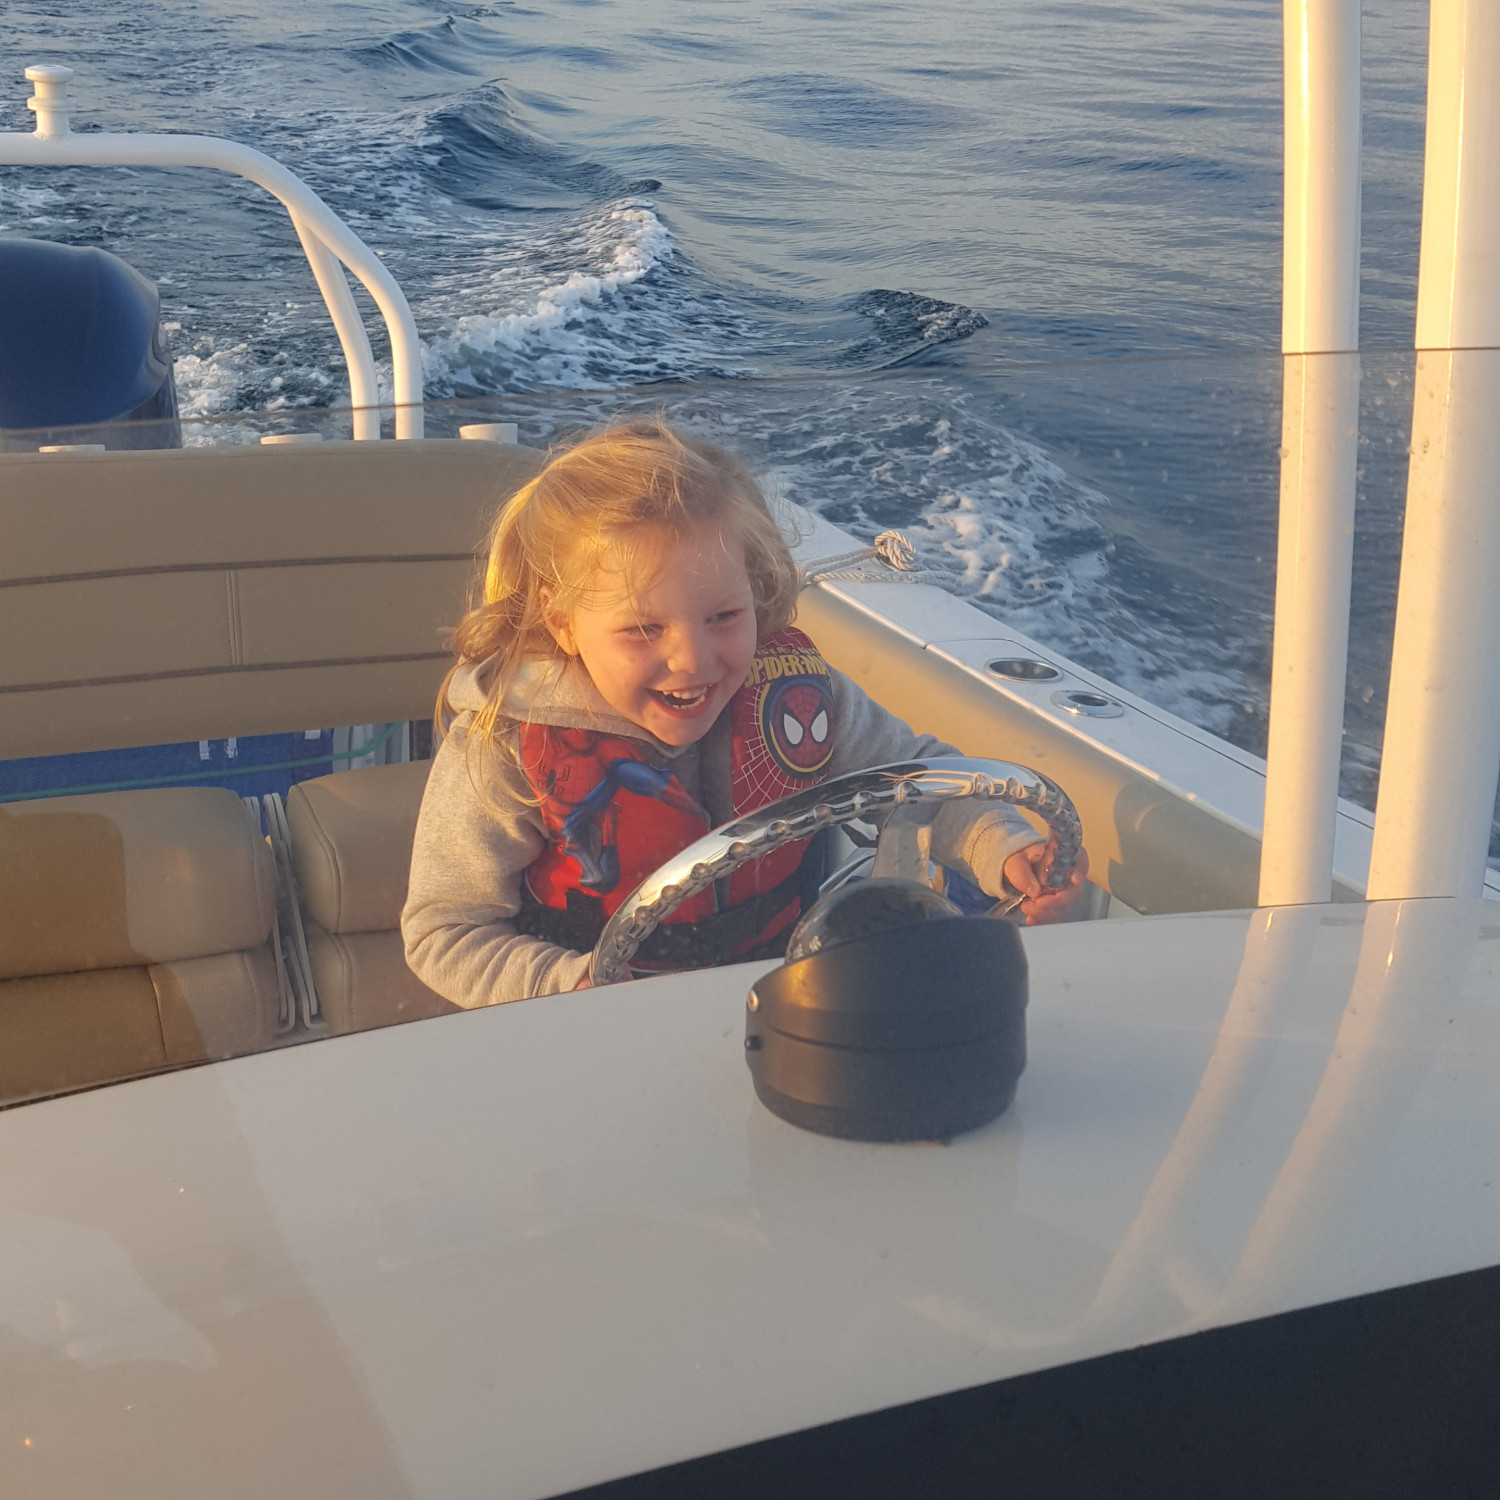 Title: Can I Drive Dada? - On board their Sportsman Open 232 Center Console - Location: Plymouth MA, off Clarks Island. Participating in the Photo Contest #SportsmanDecember2017